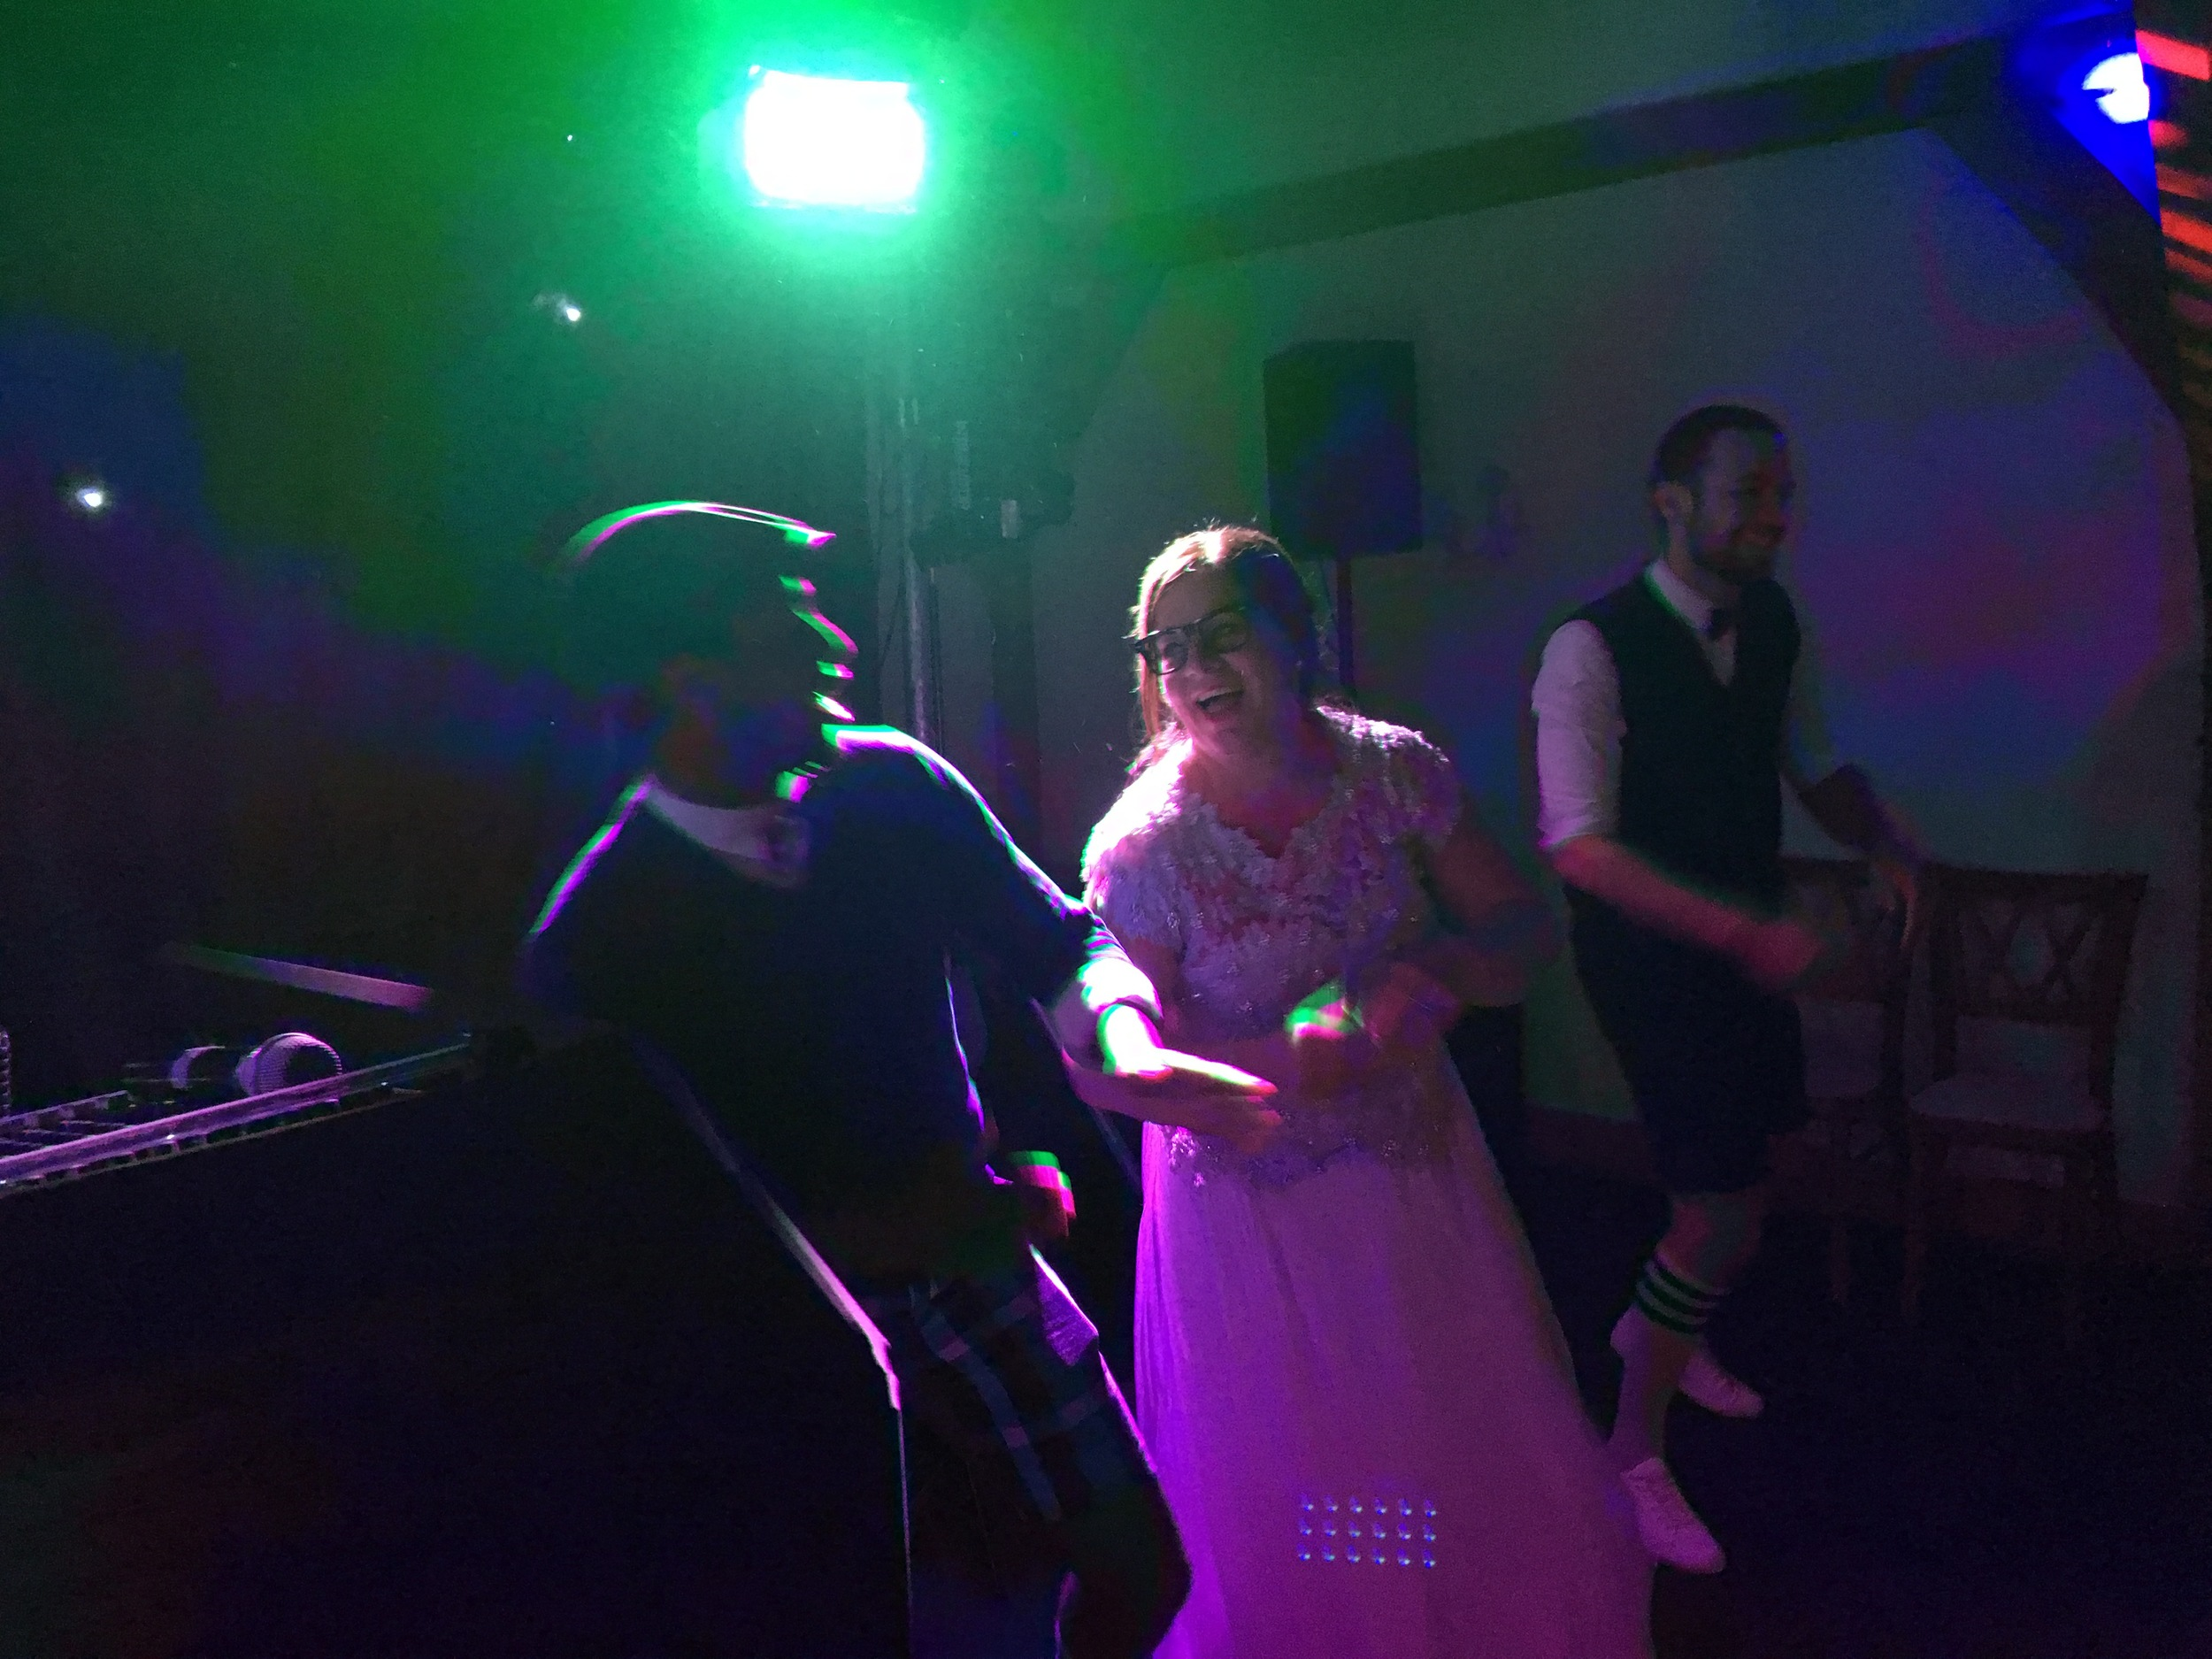 The bride and groom showing their guests how it's done Brewin style!